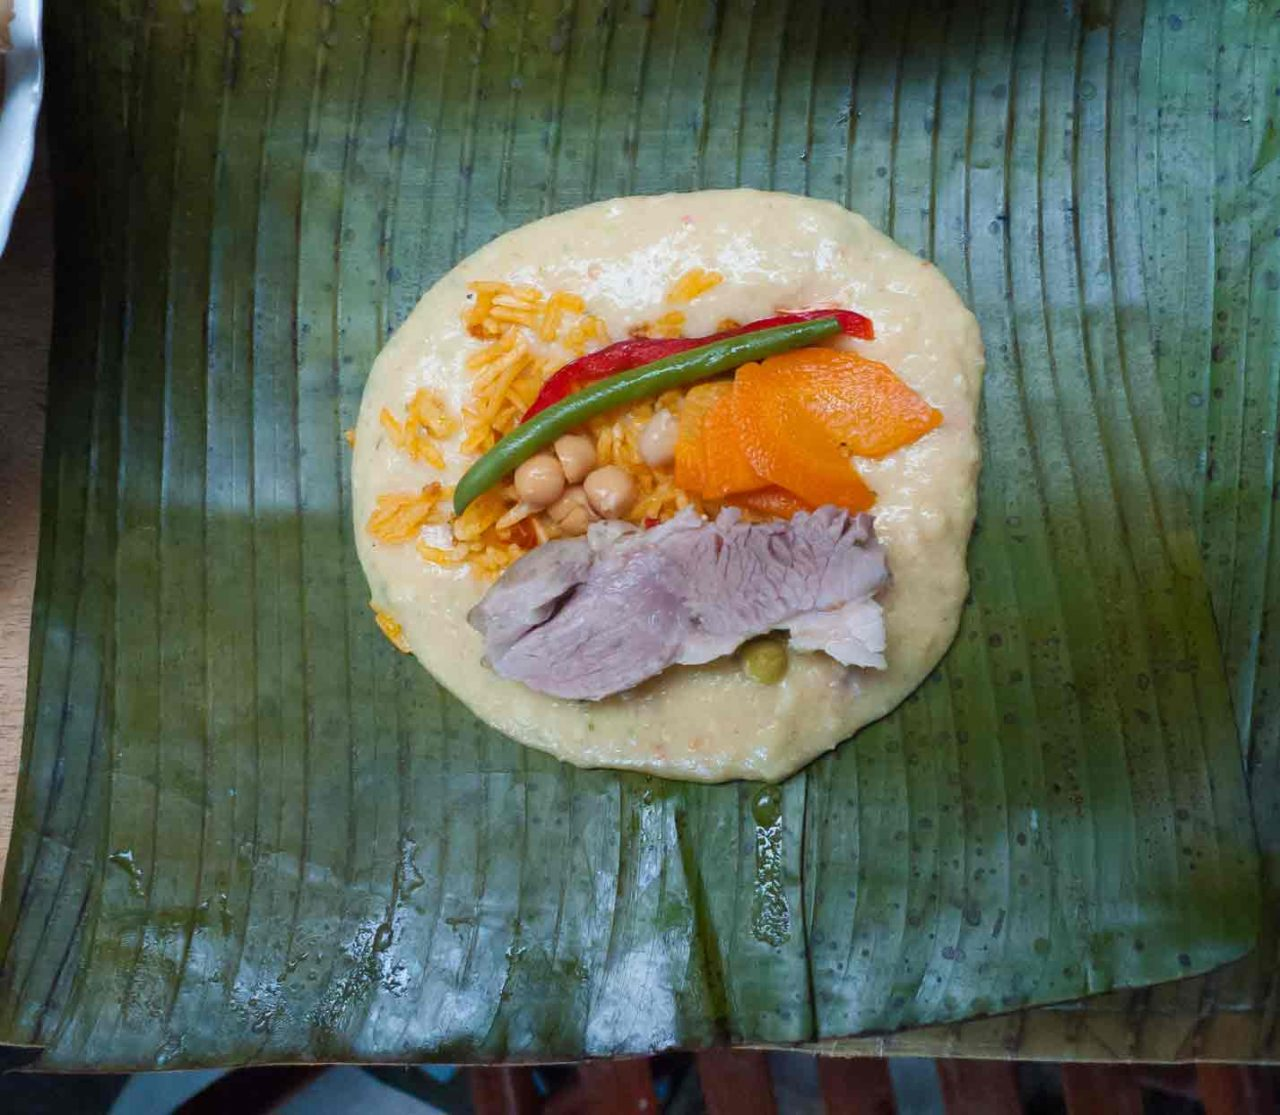 Costa Rican Tamales - How they look inside before they are cooked. Recipe with photos